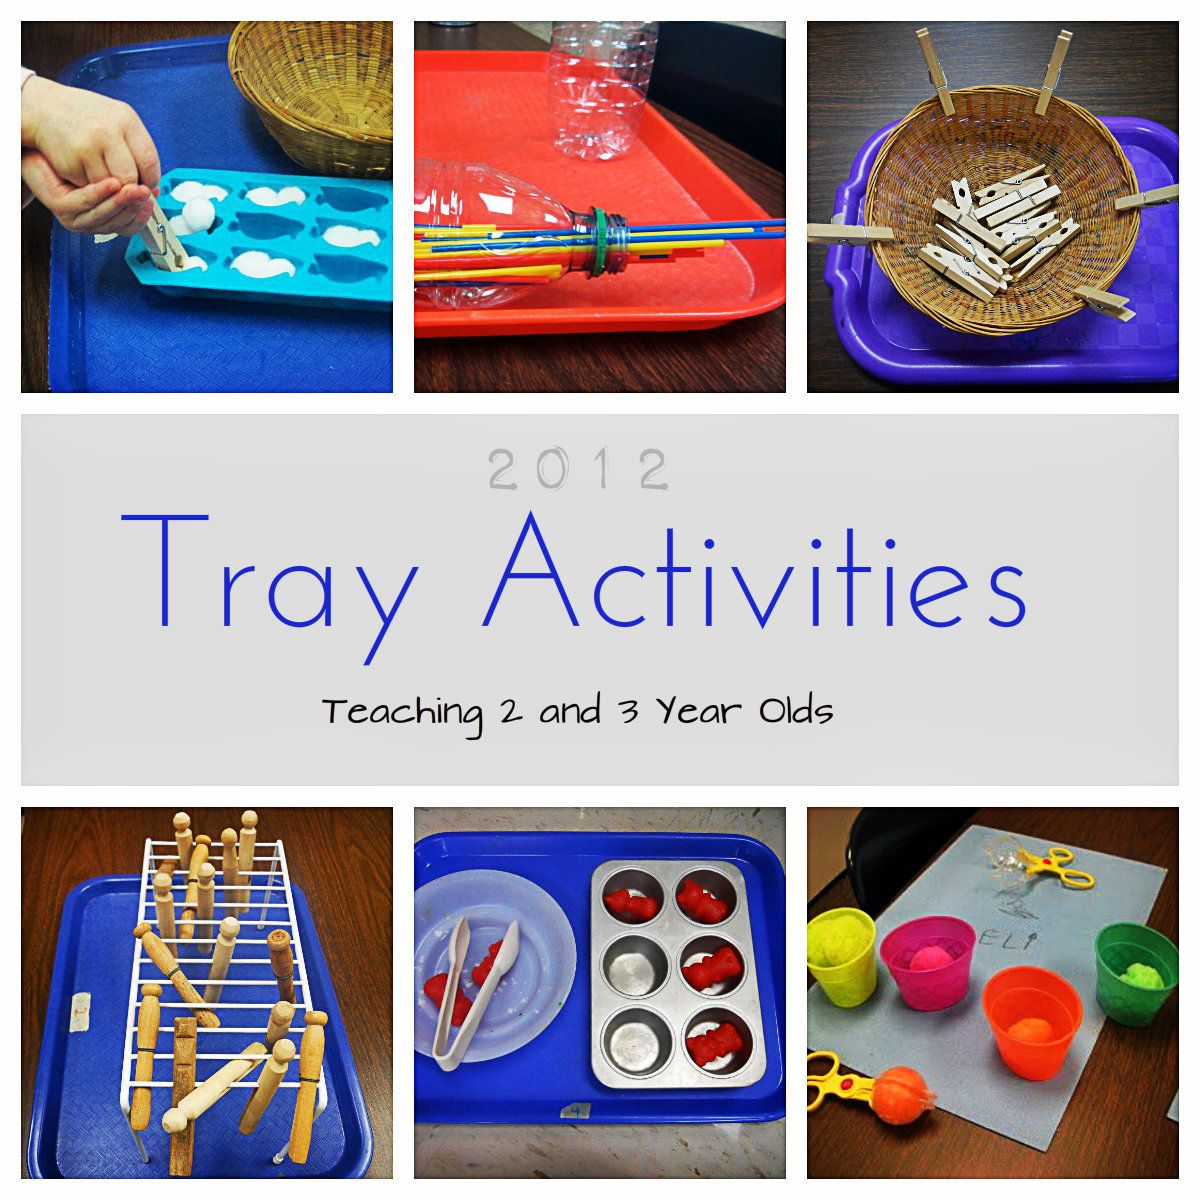 Teaching 2 And 3 Year Olds A Collection Of Tray